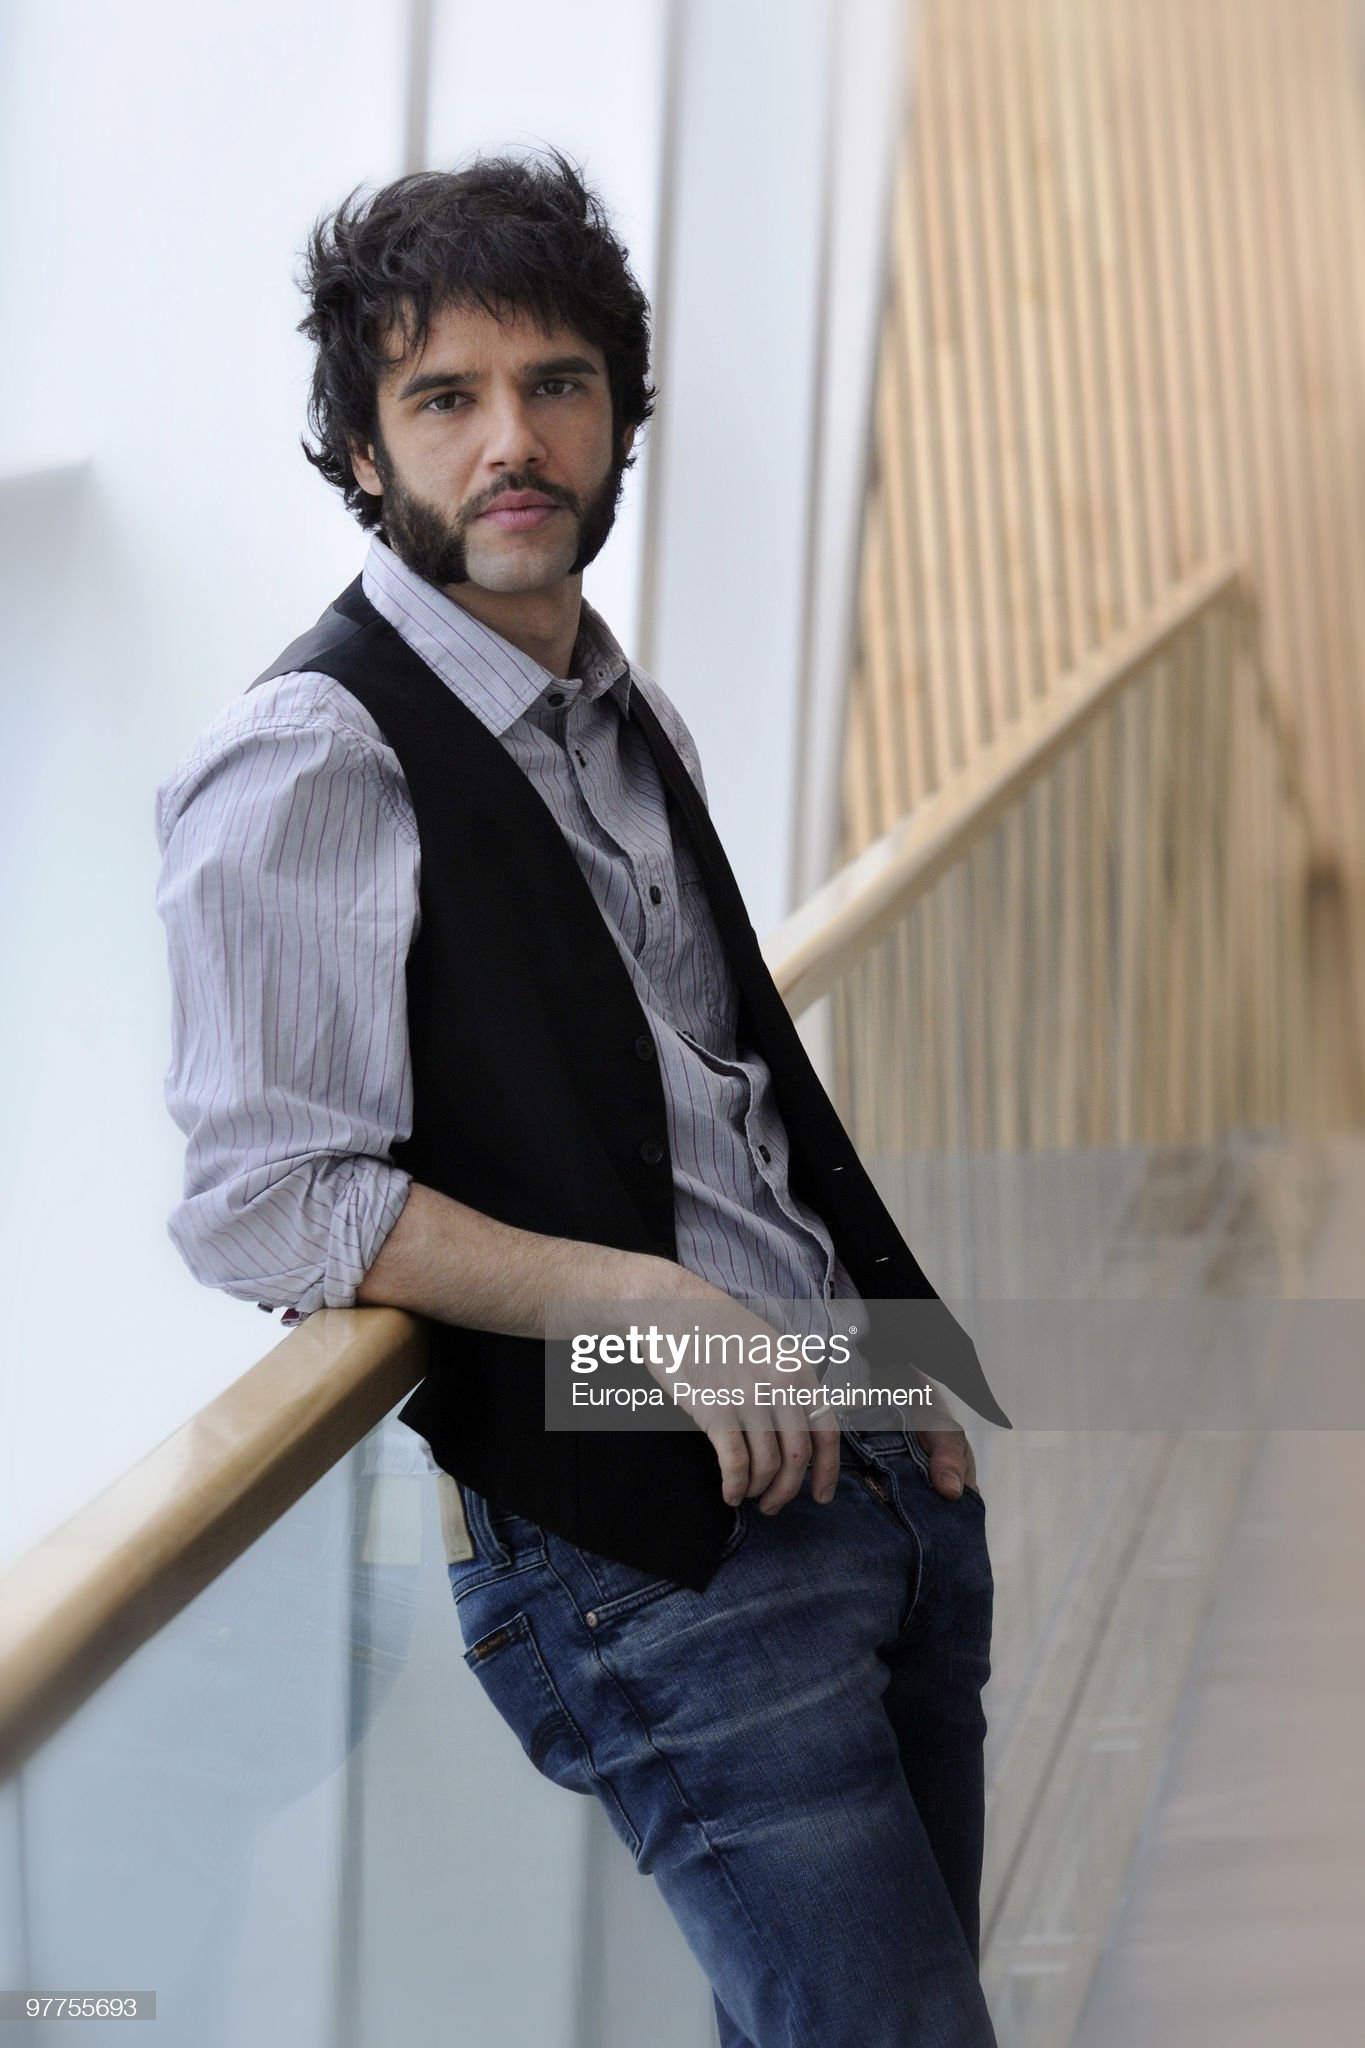 ¿Cuánto mide Raúl Peña? - Altura Spanish-actor-raul-pena-poses-during-a-portrait-session-on-march-16-picture-id97755693?s=2048x2048